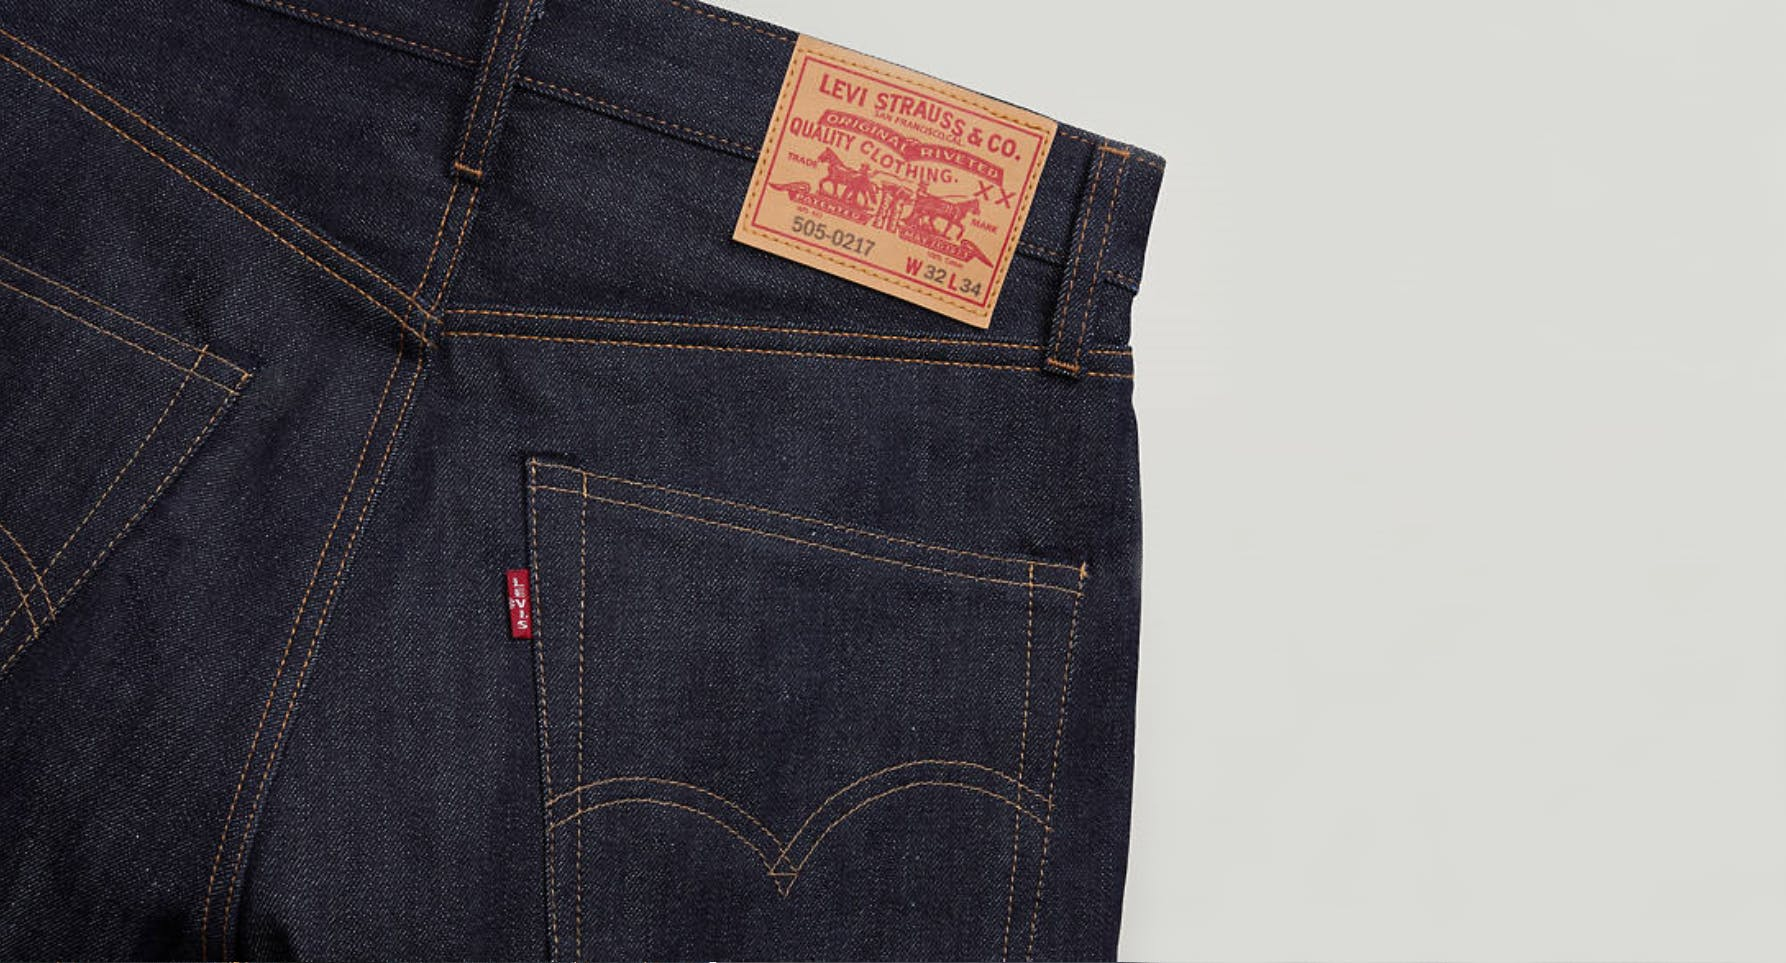 5f888186597 Best Levi's 505s - Editor's Guide to the Iconic 505 Style and Best Pairs